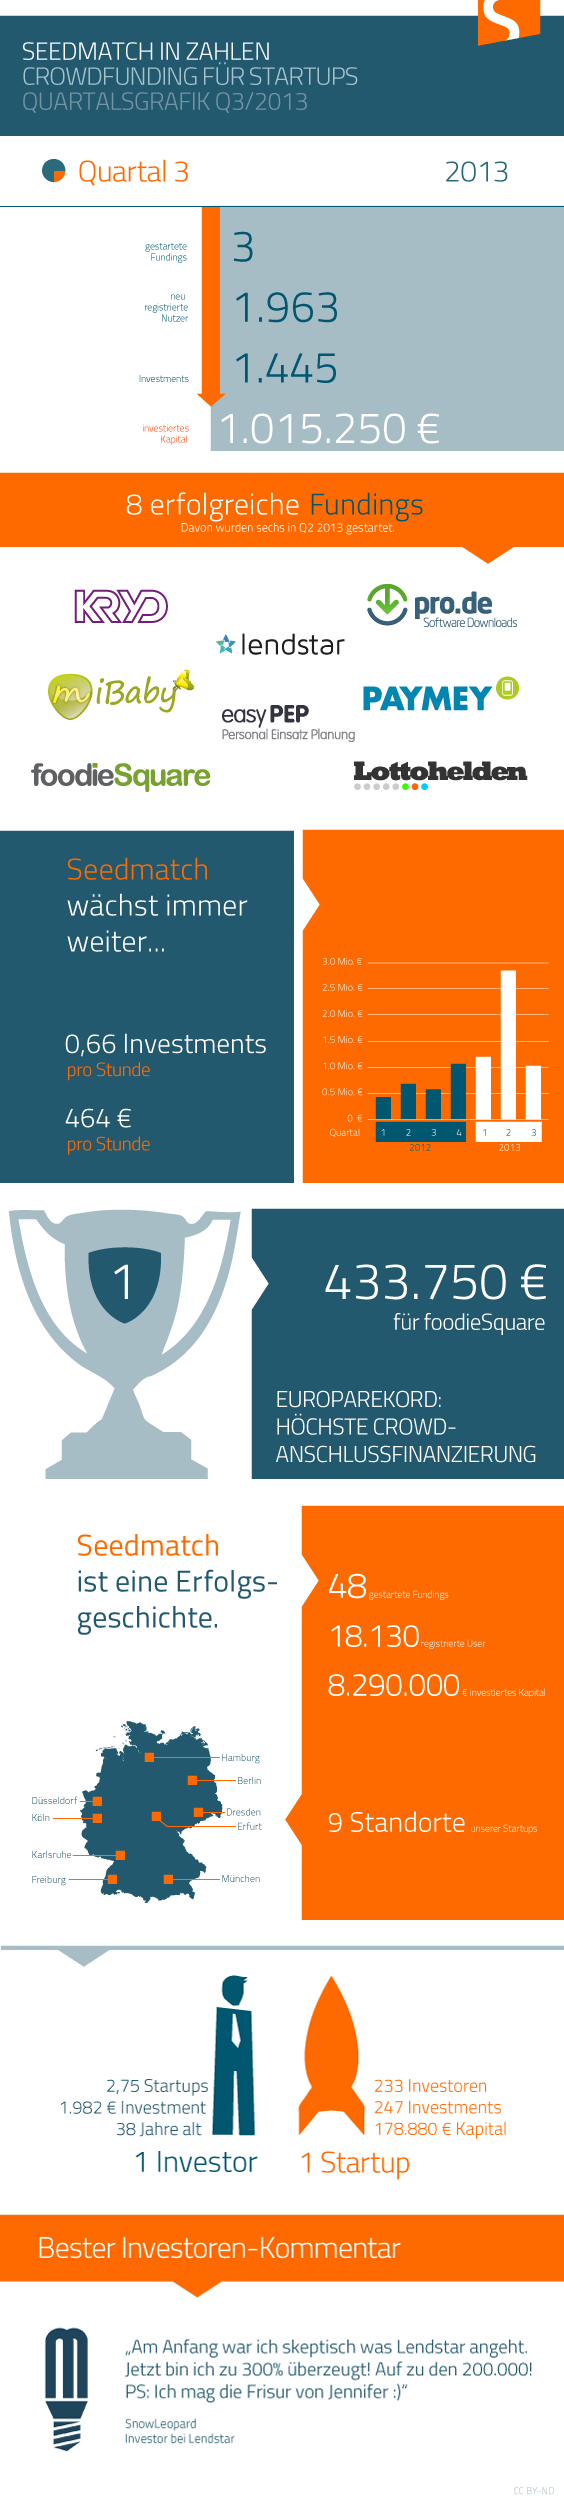 Seedmatch Quartalsgrafik Q3 2013